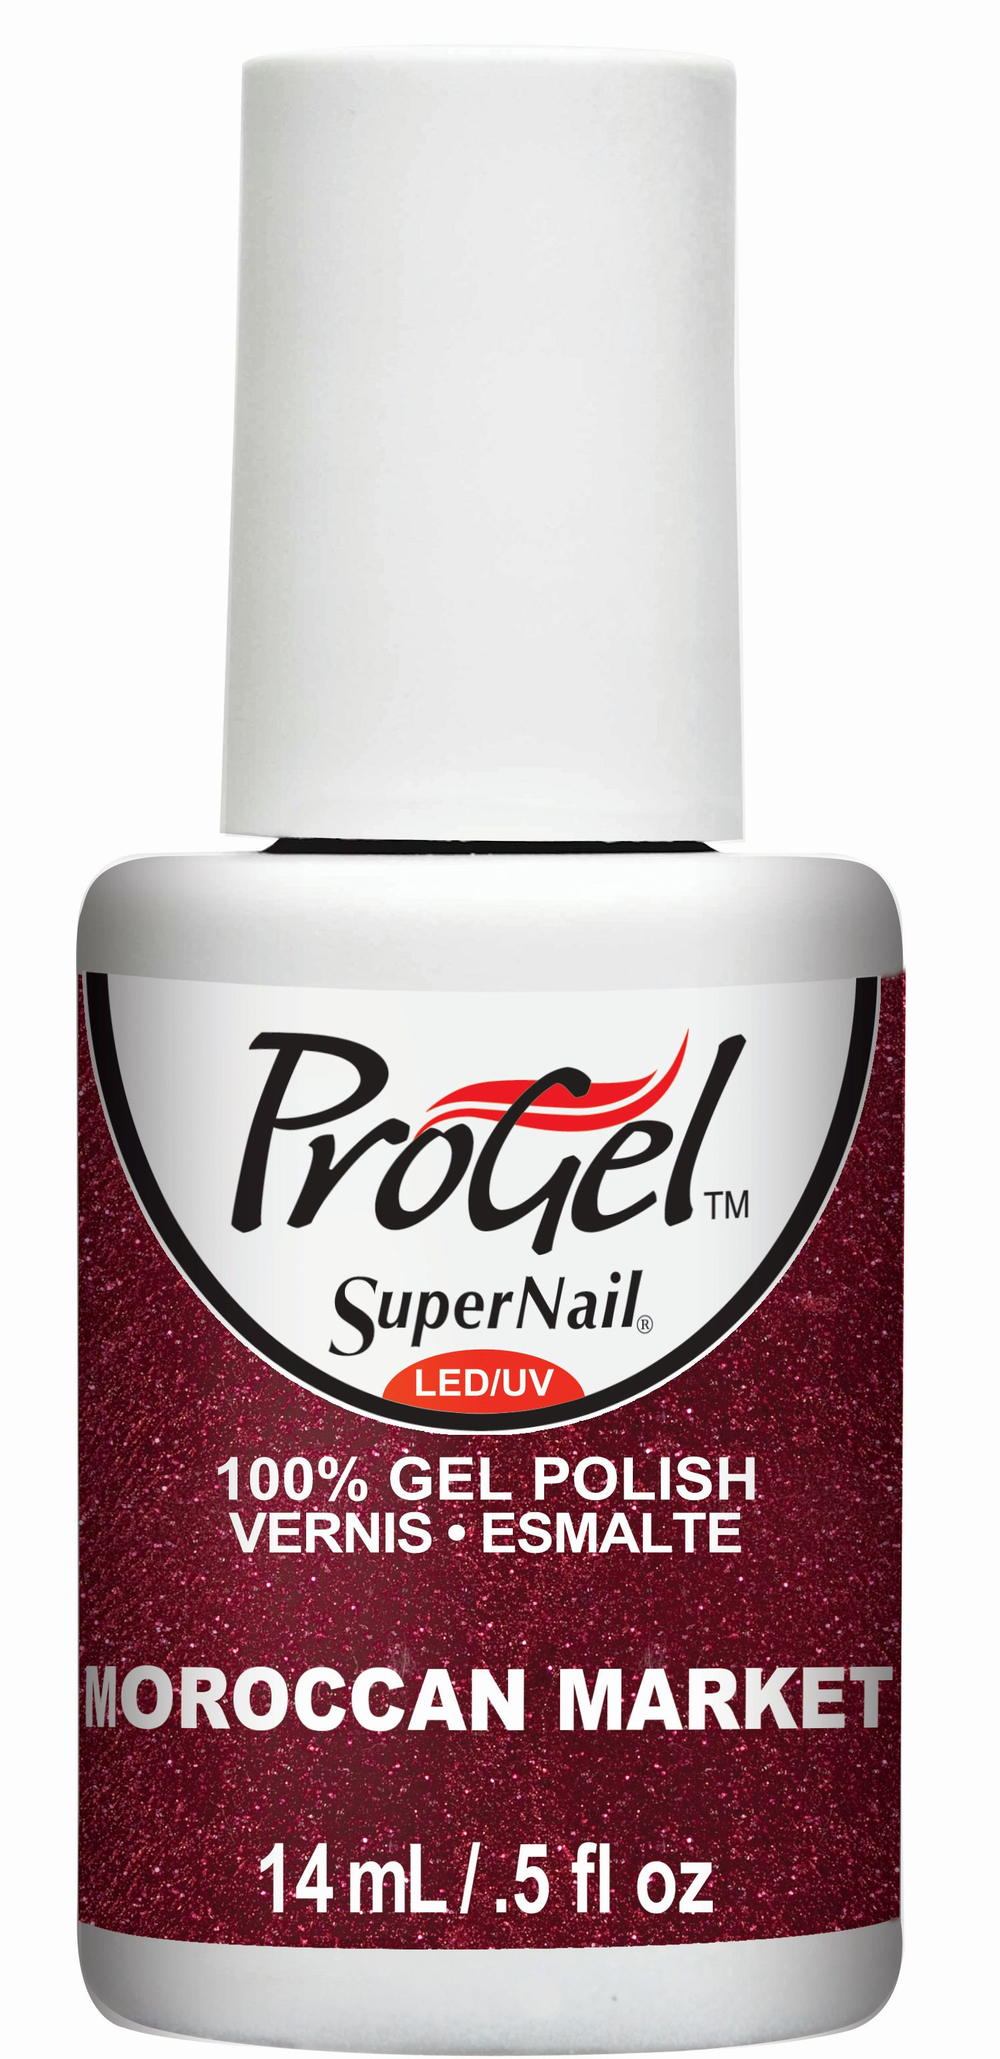 <p>SuperNail in ProGel Moroccan Market.&nbsp;</p>